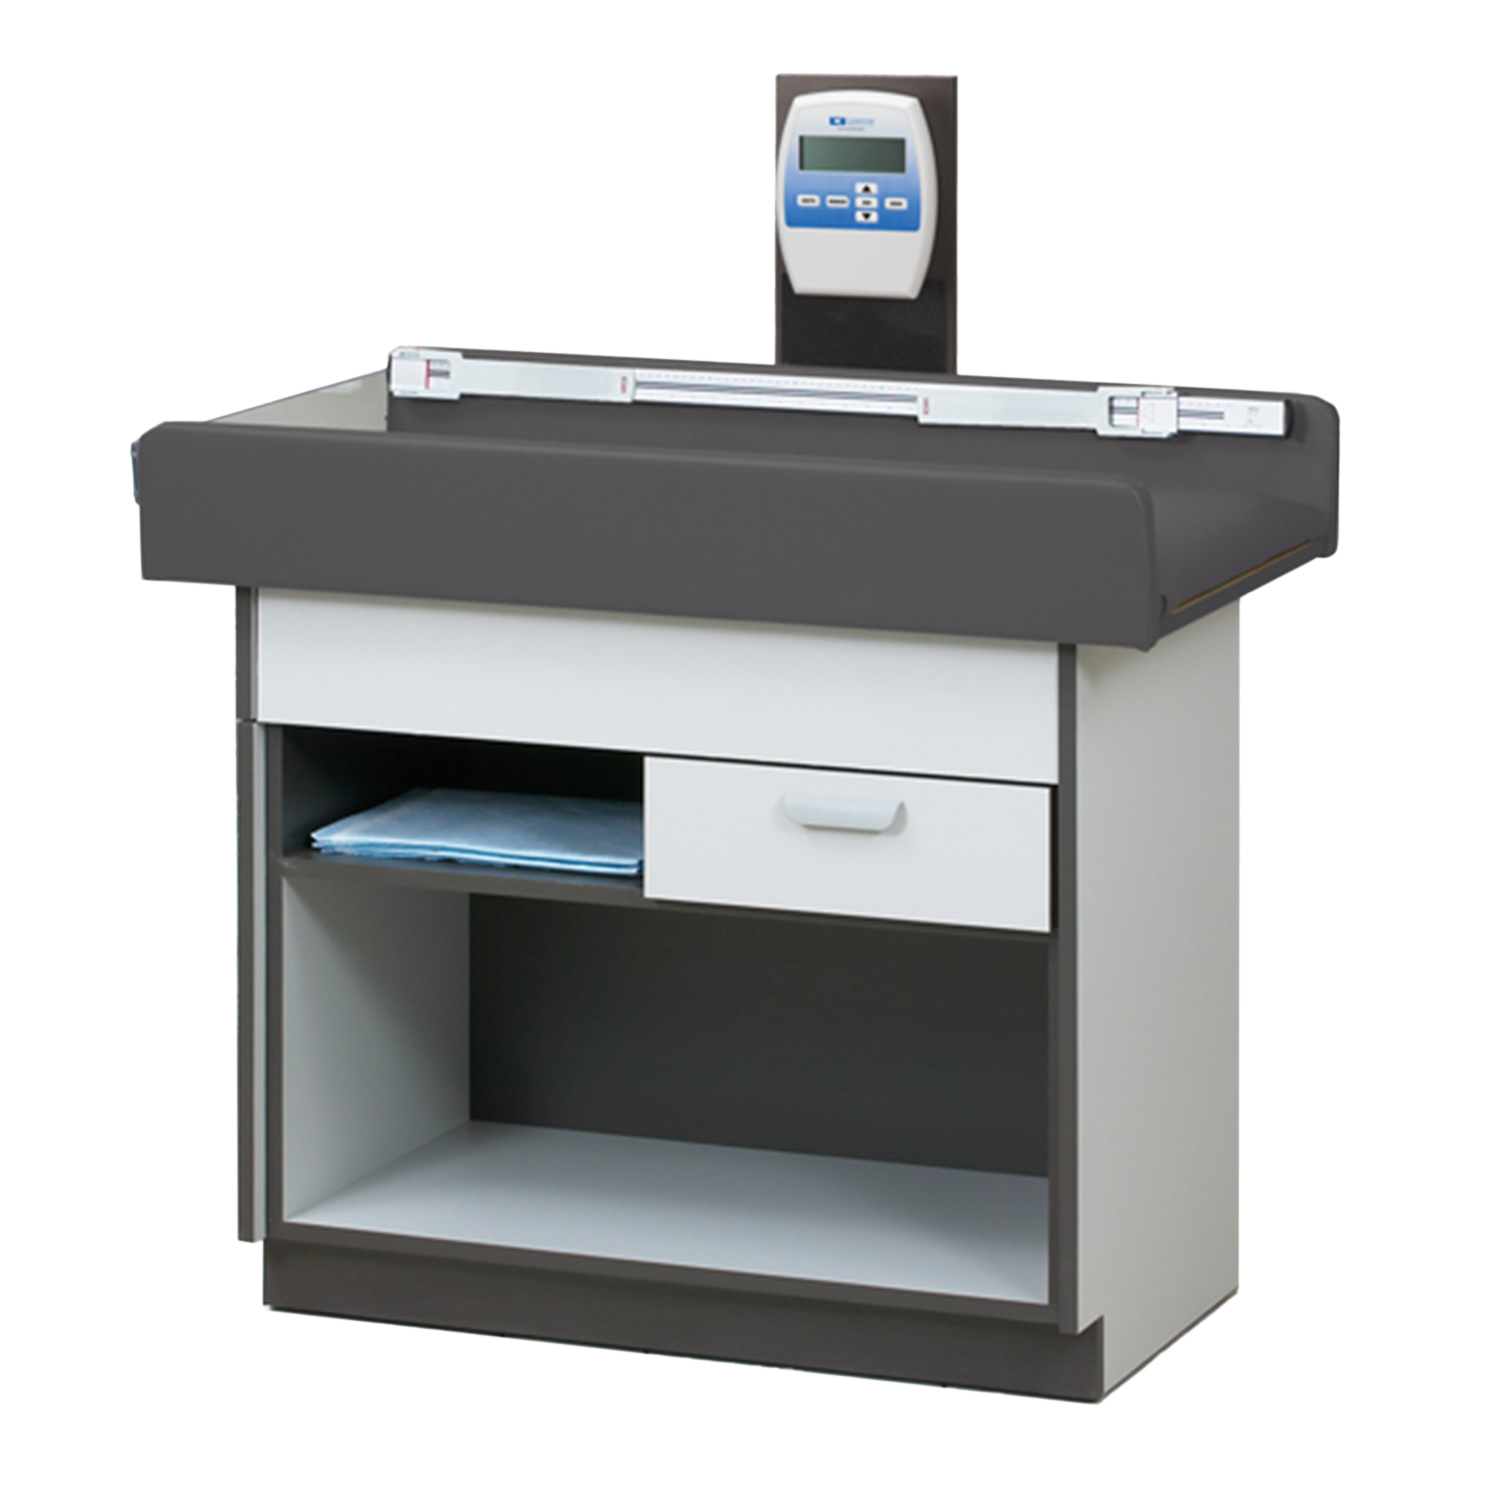 Clinton Select Series Pediatric Scale Table